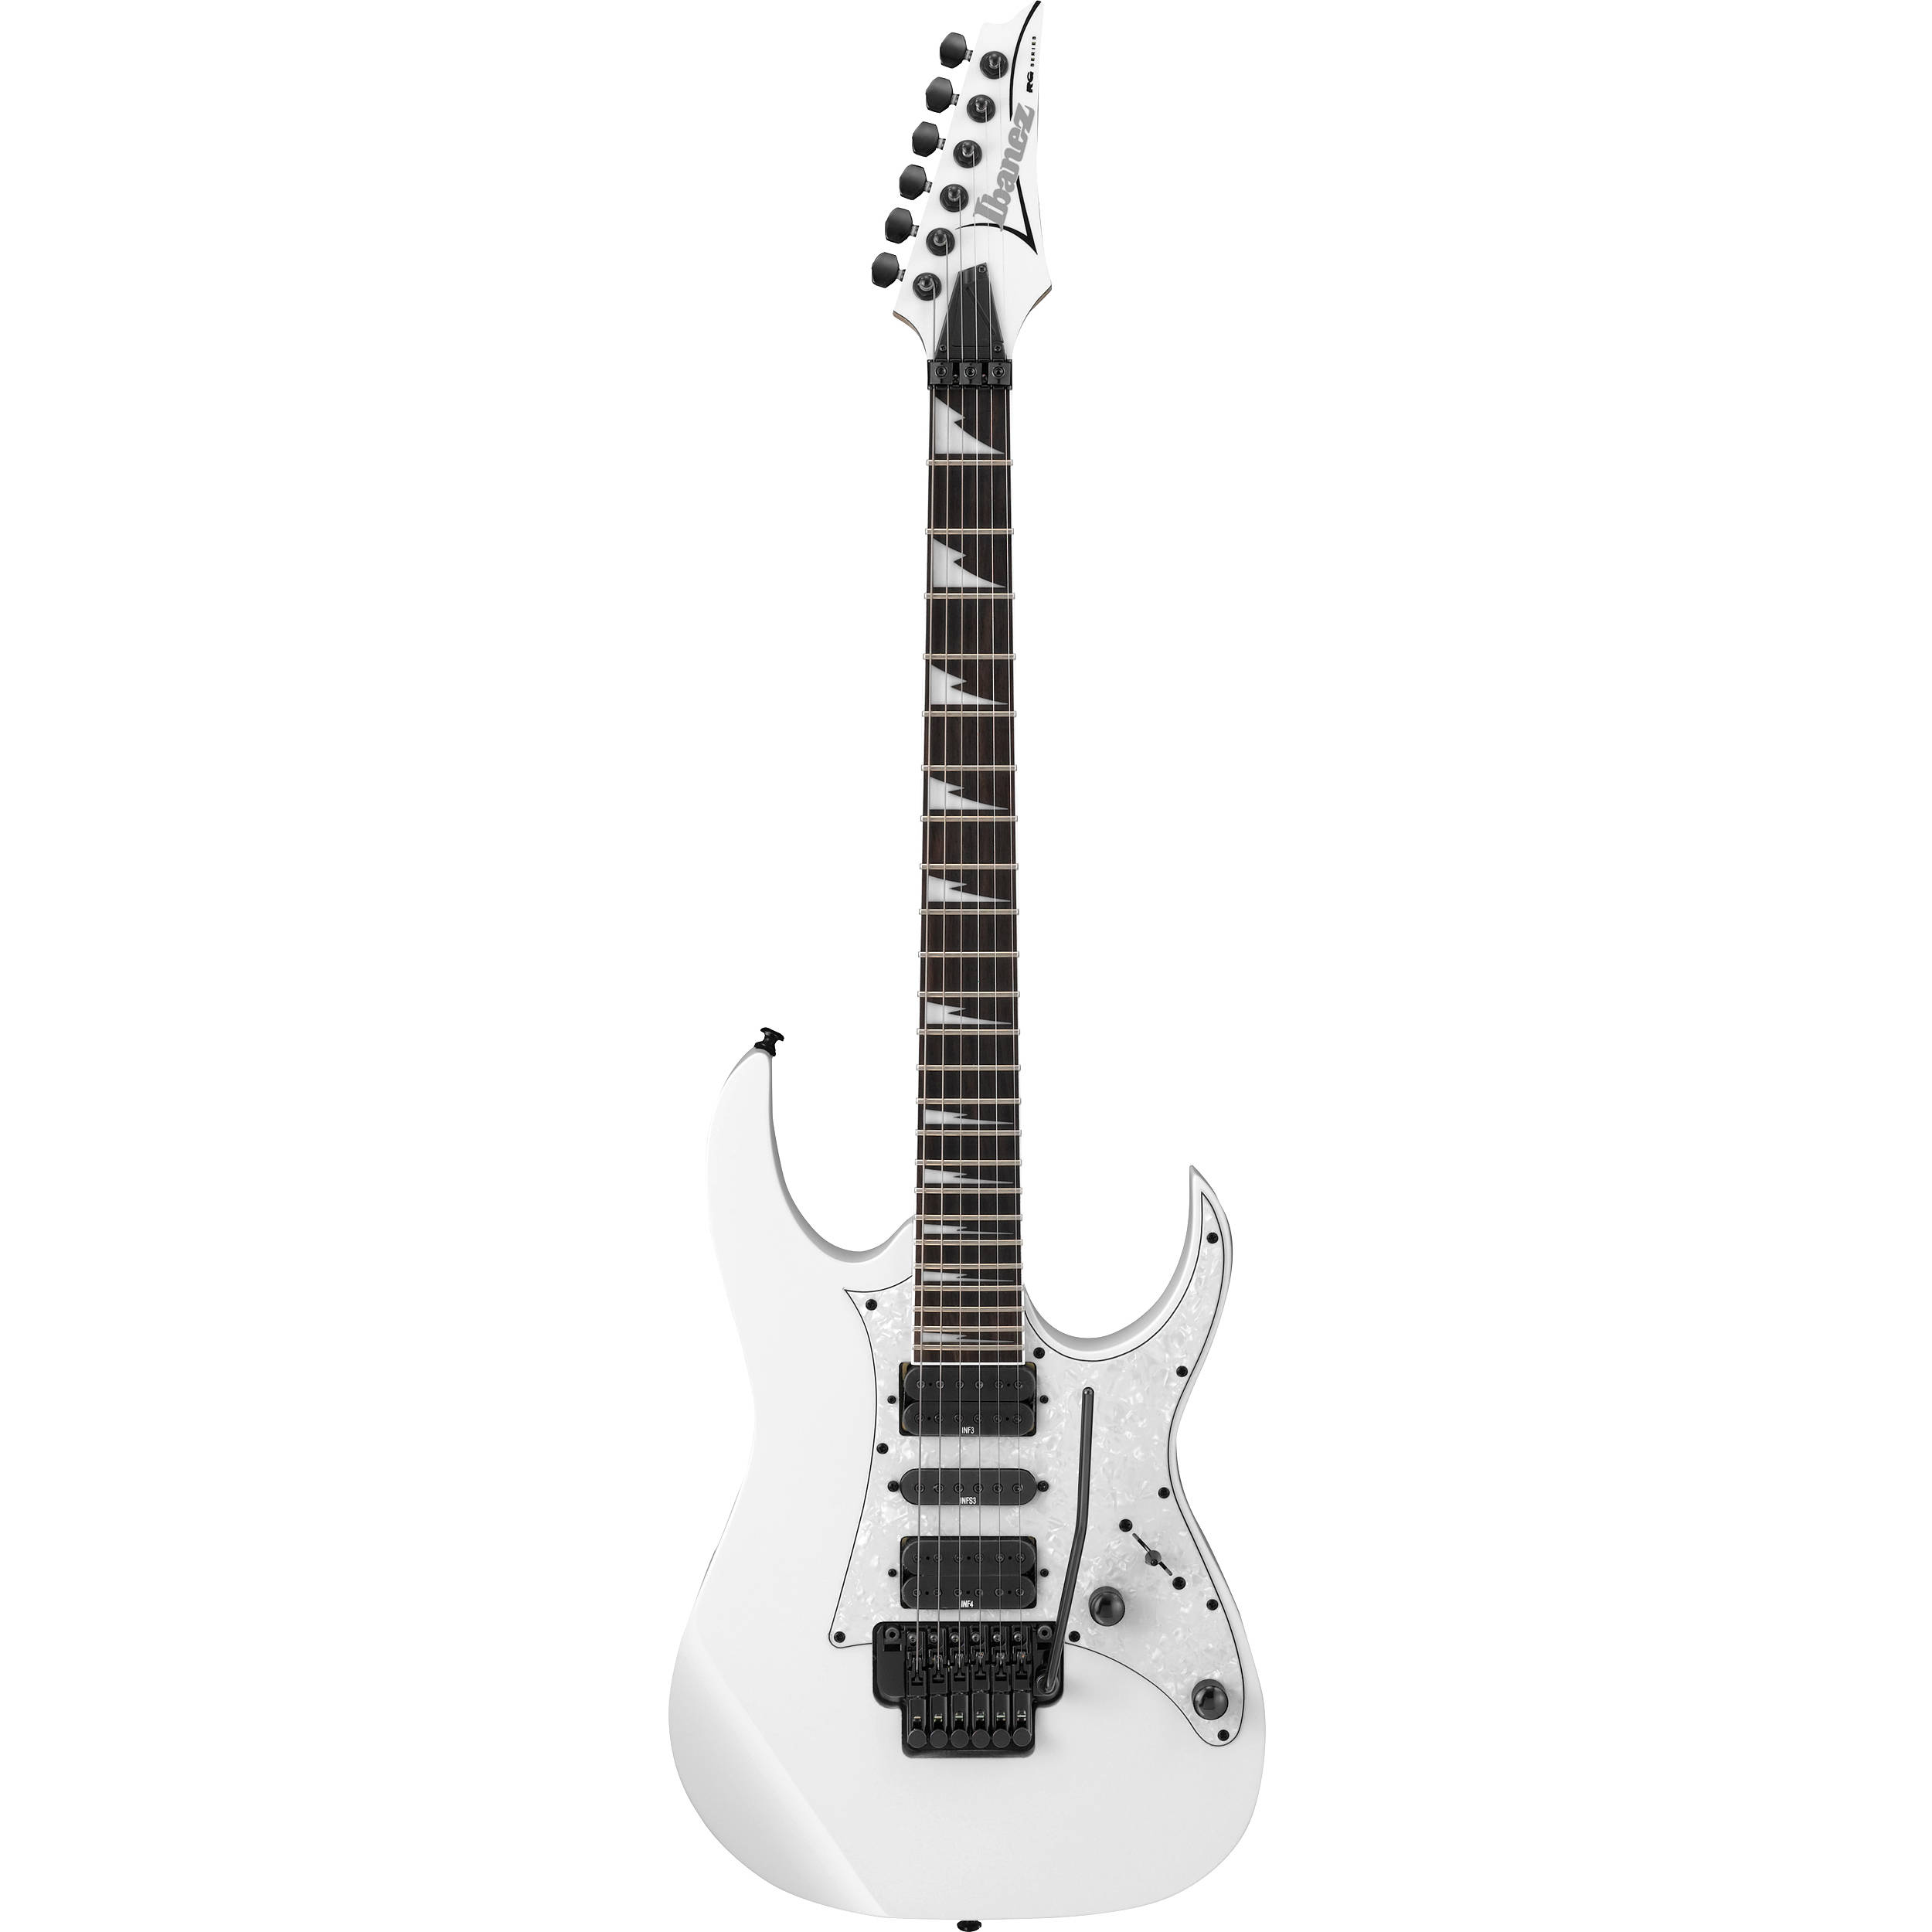 Ibanez Rg450dxb Rg Series Electric Guitar White Rg450dxbwh B H